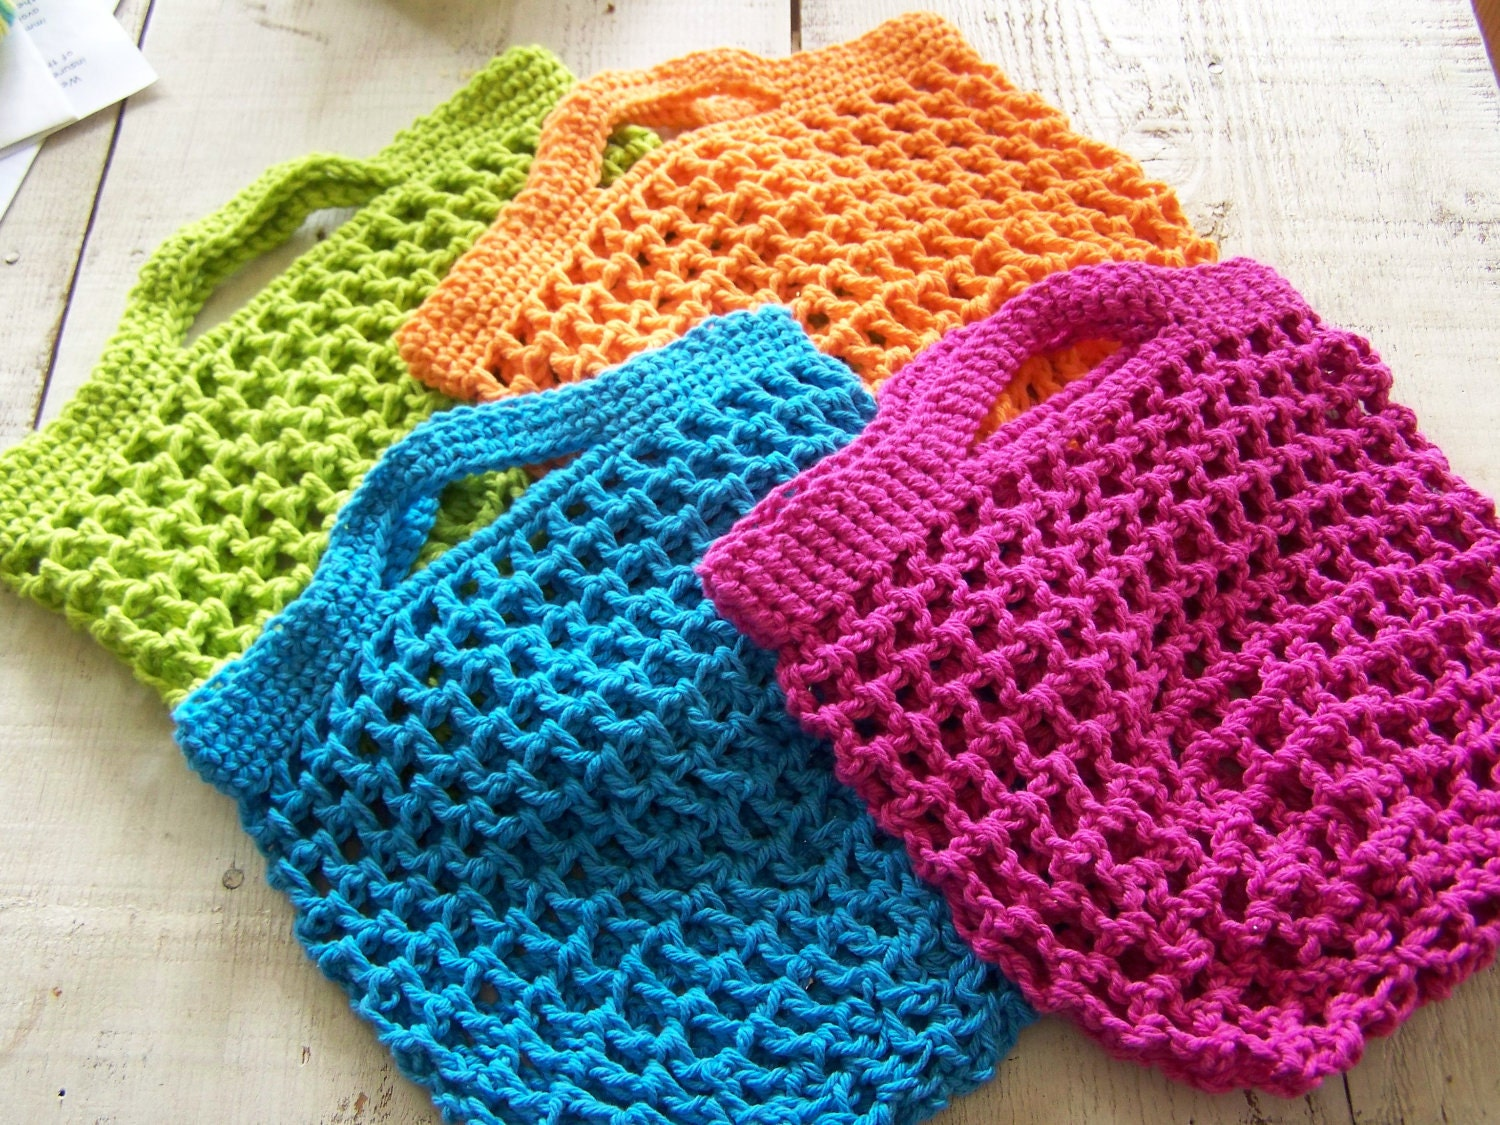 Small Tote Bags: Small Tote Bag Crochet Pattern